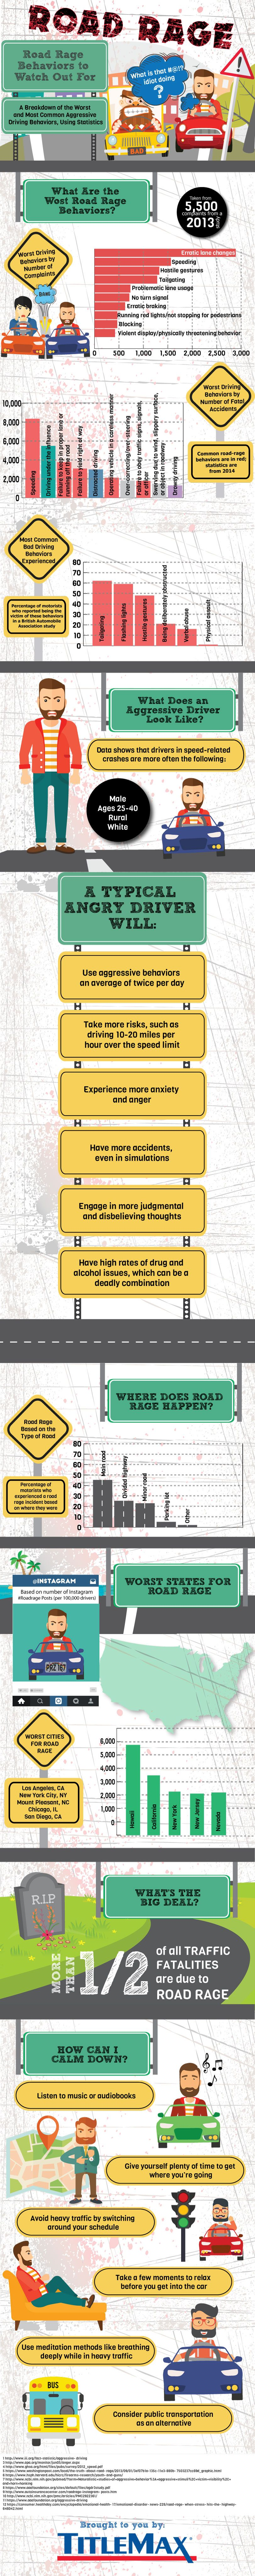 The Many Behaviors Behind Road Rage